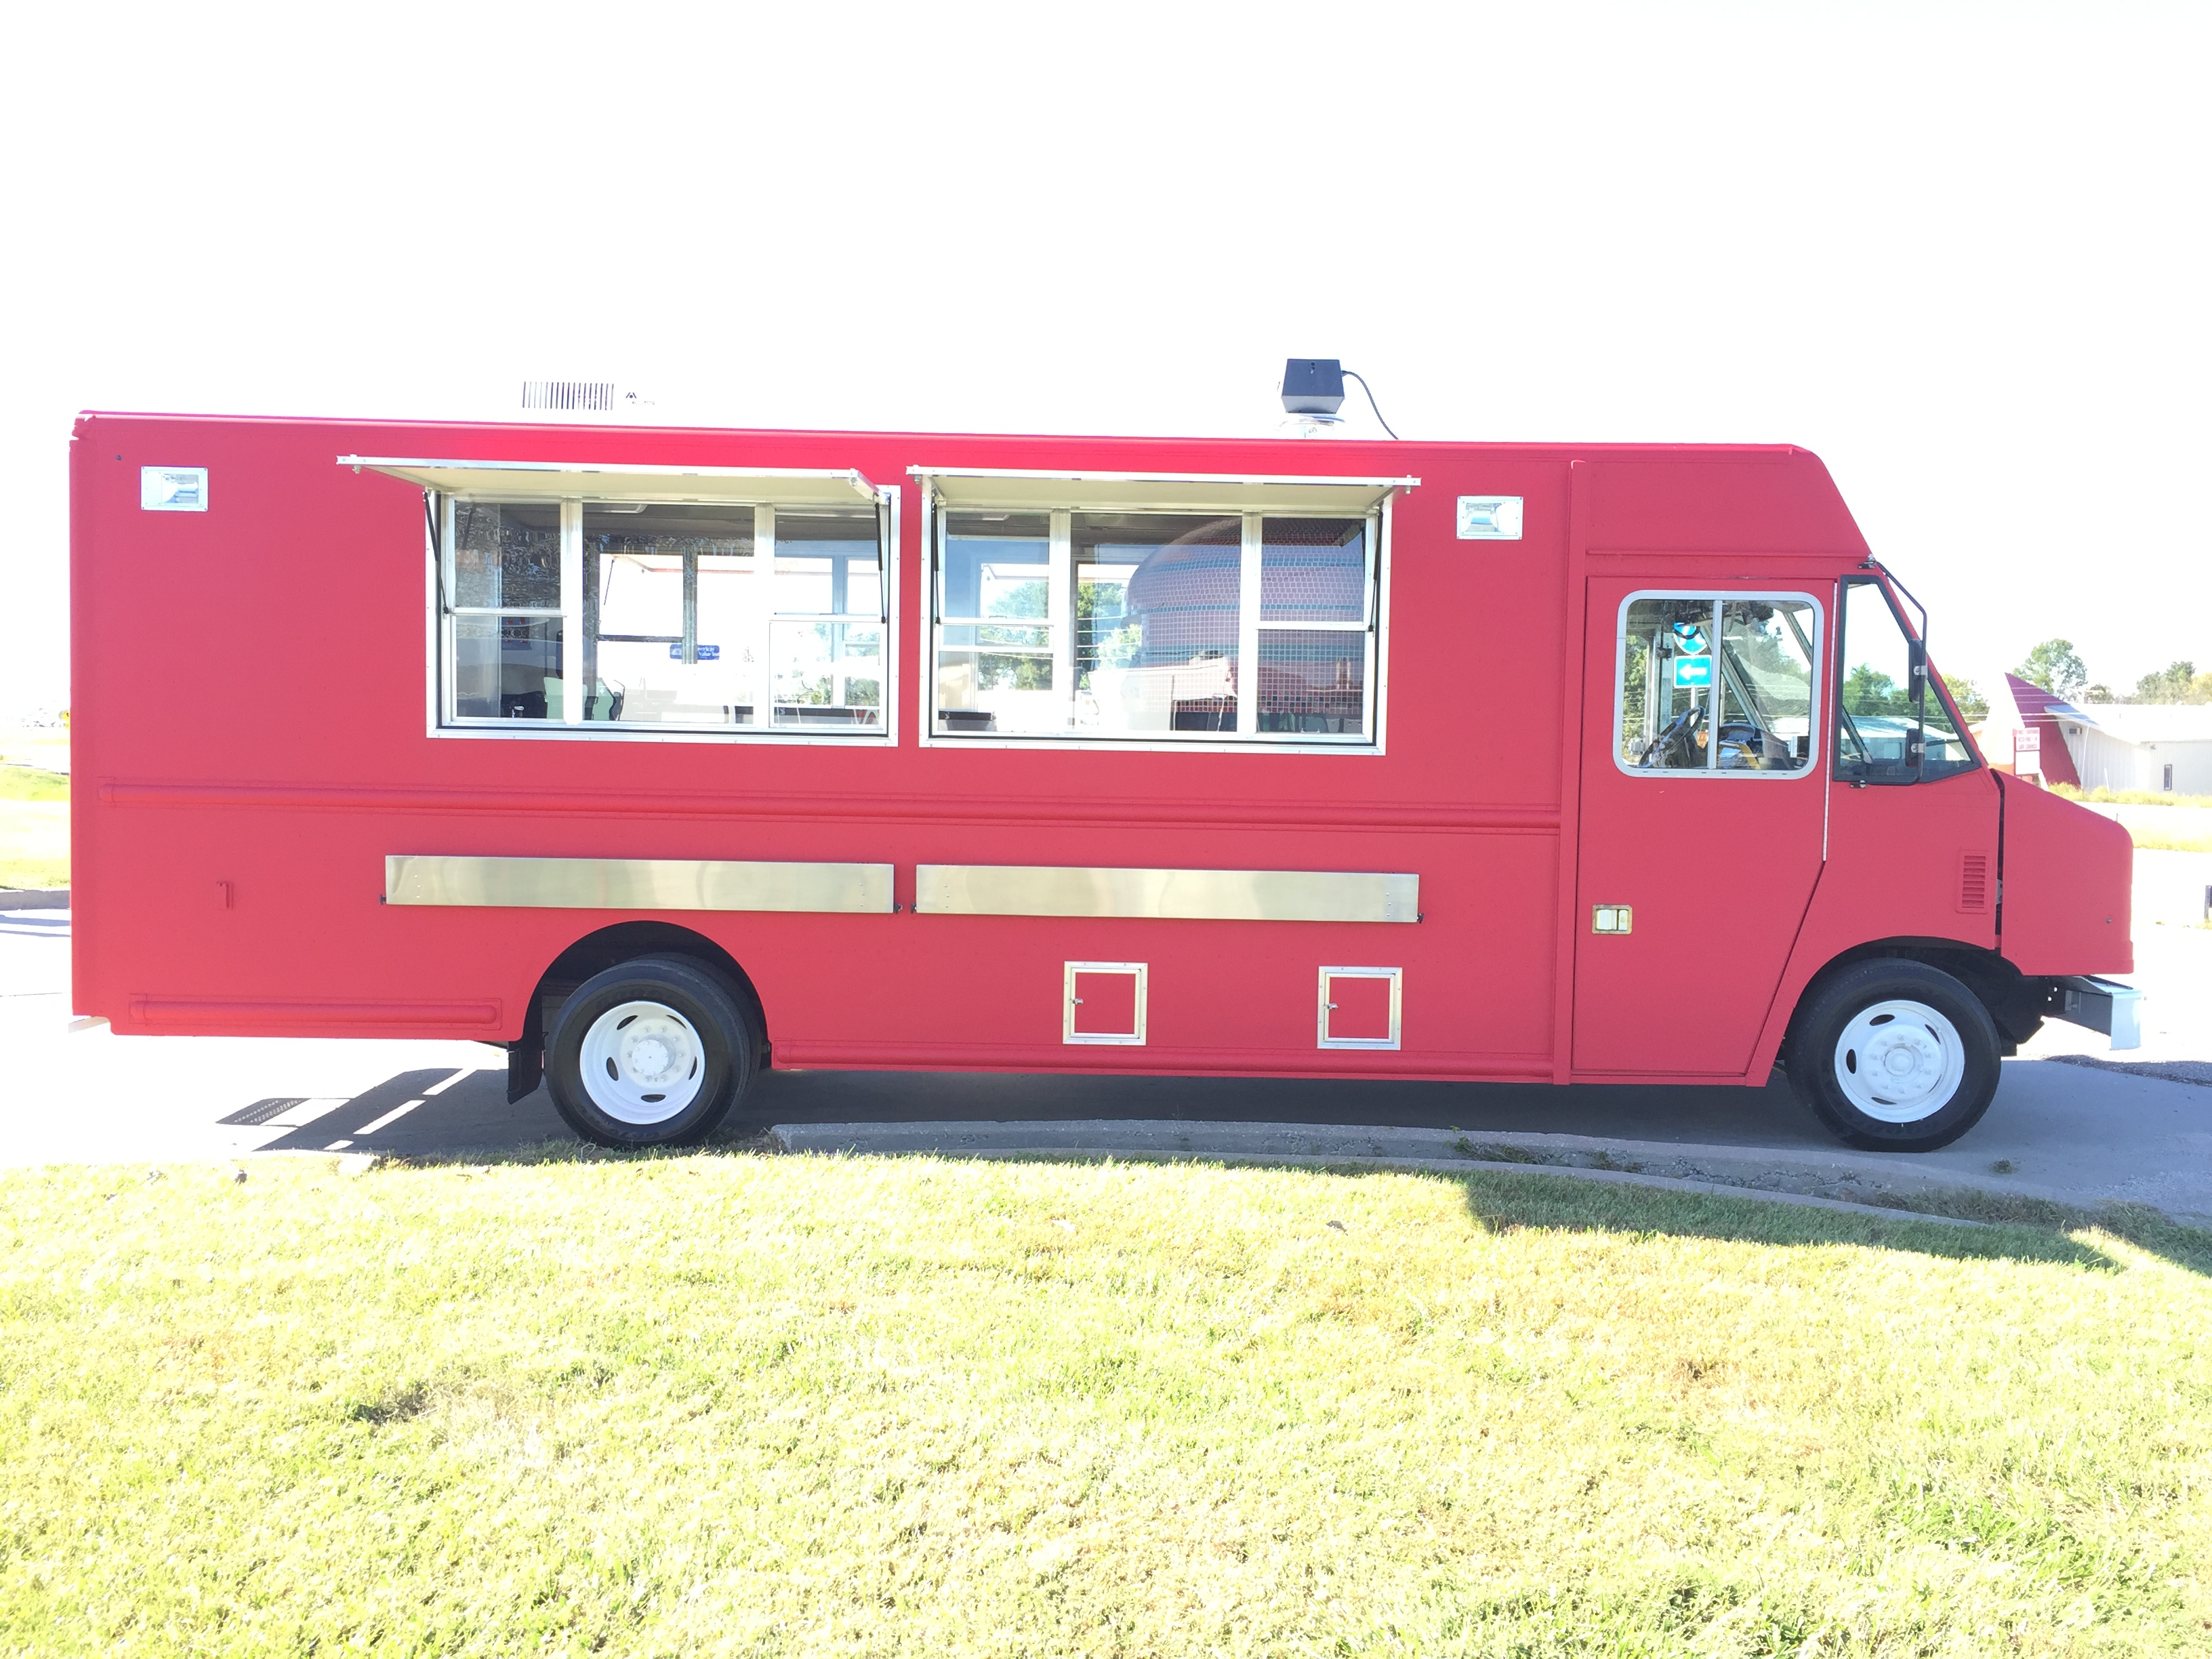 large image of 2016 Ford Brick Oven Pizza Truck